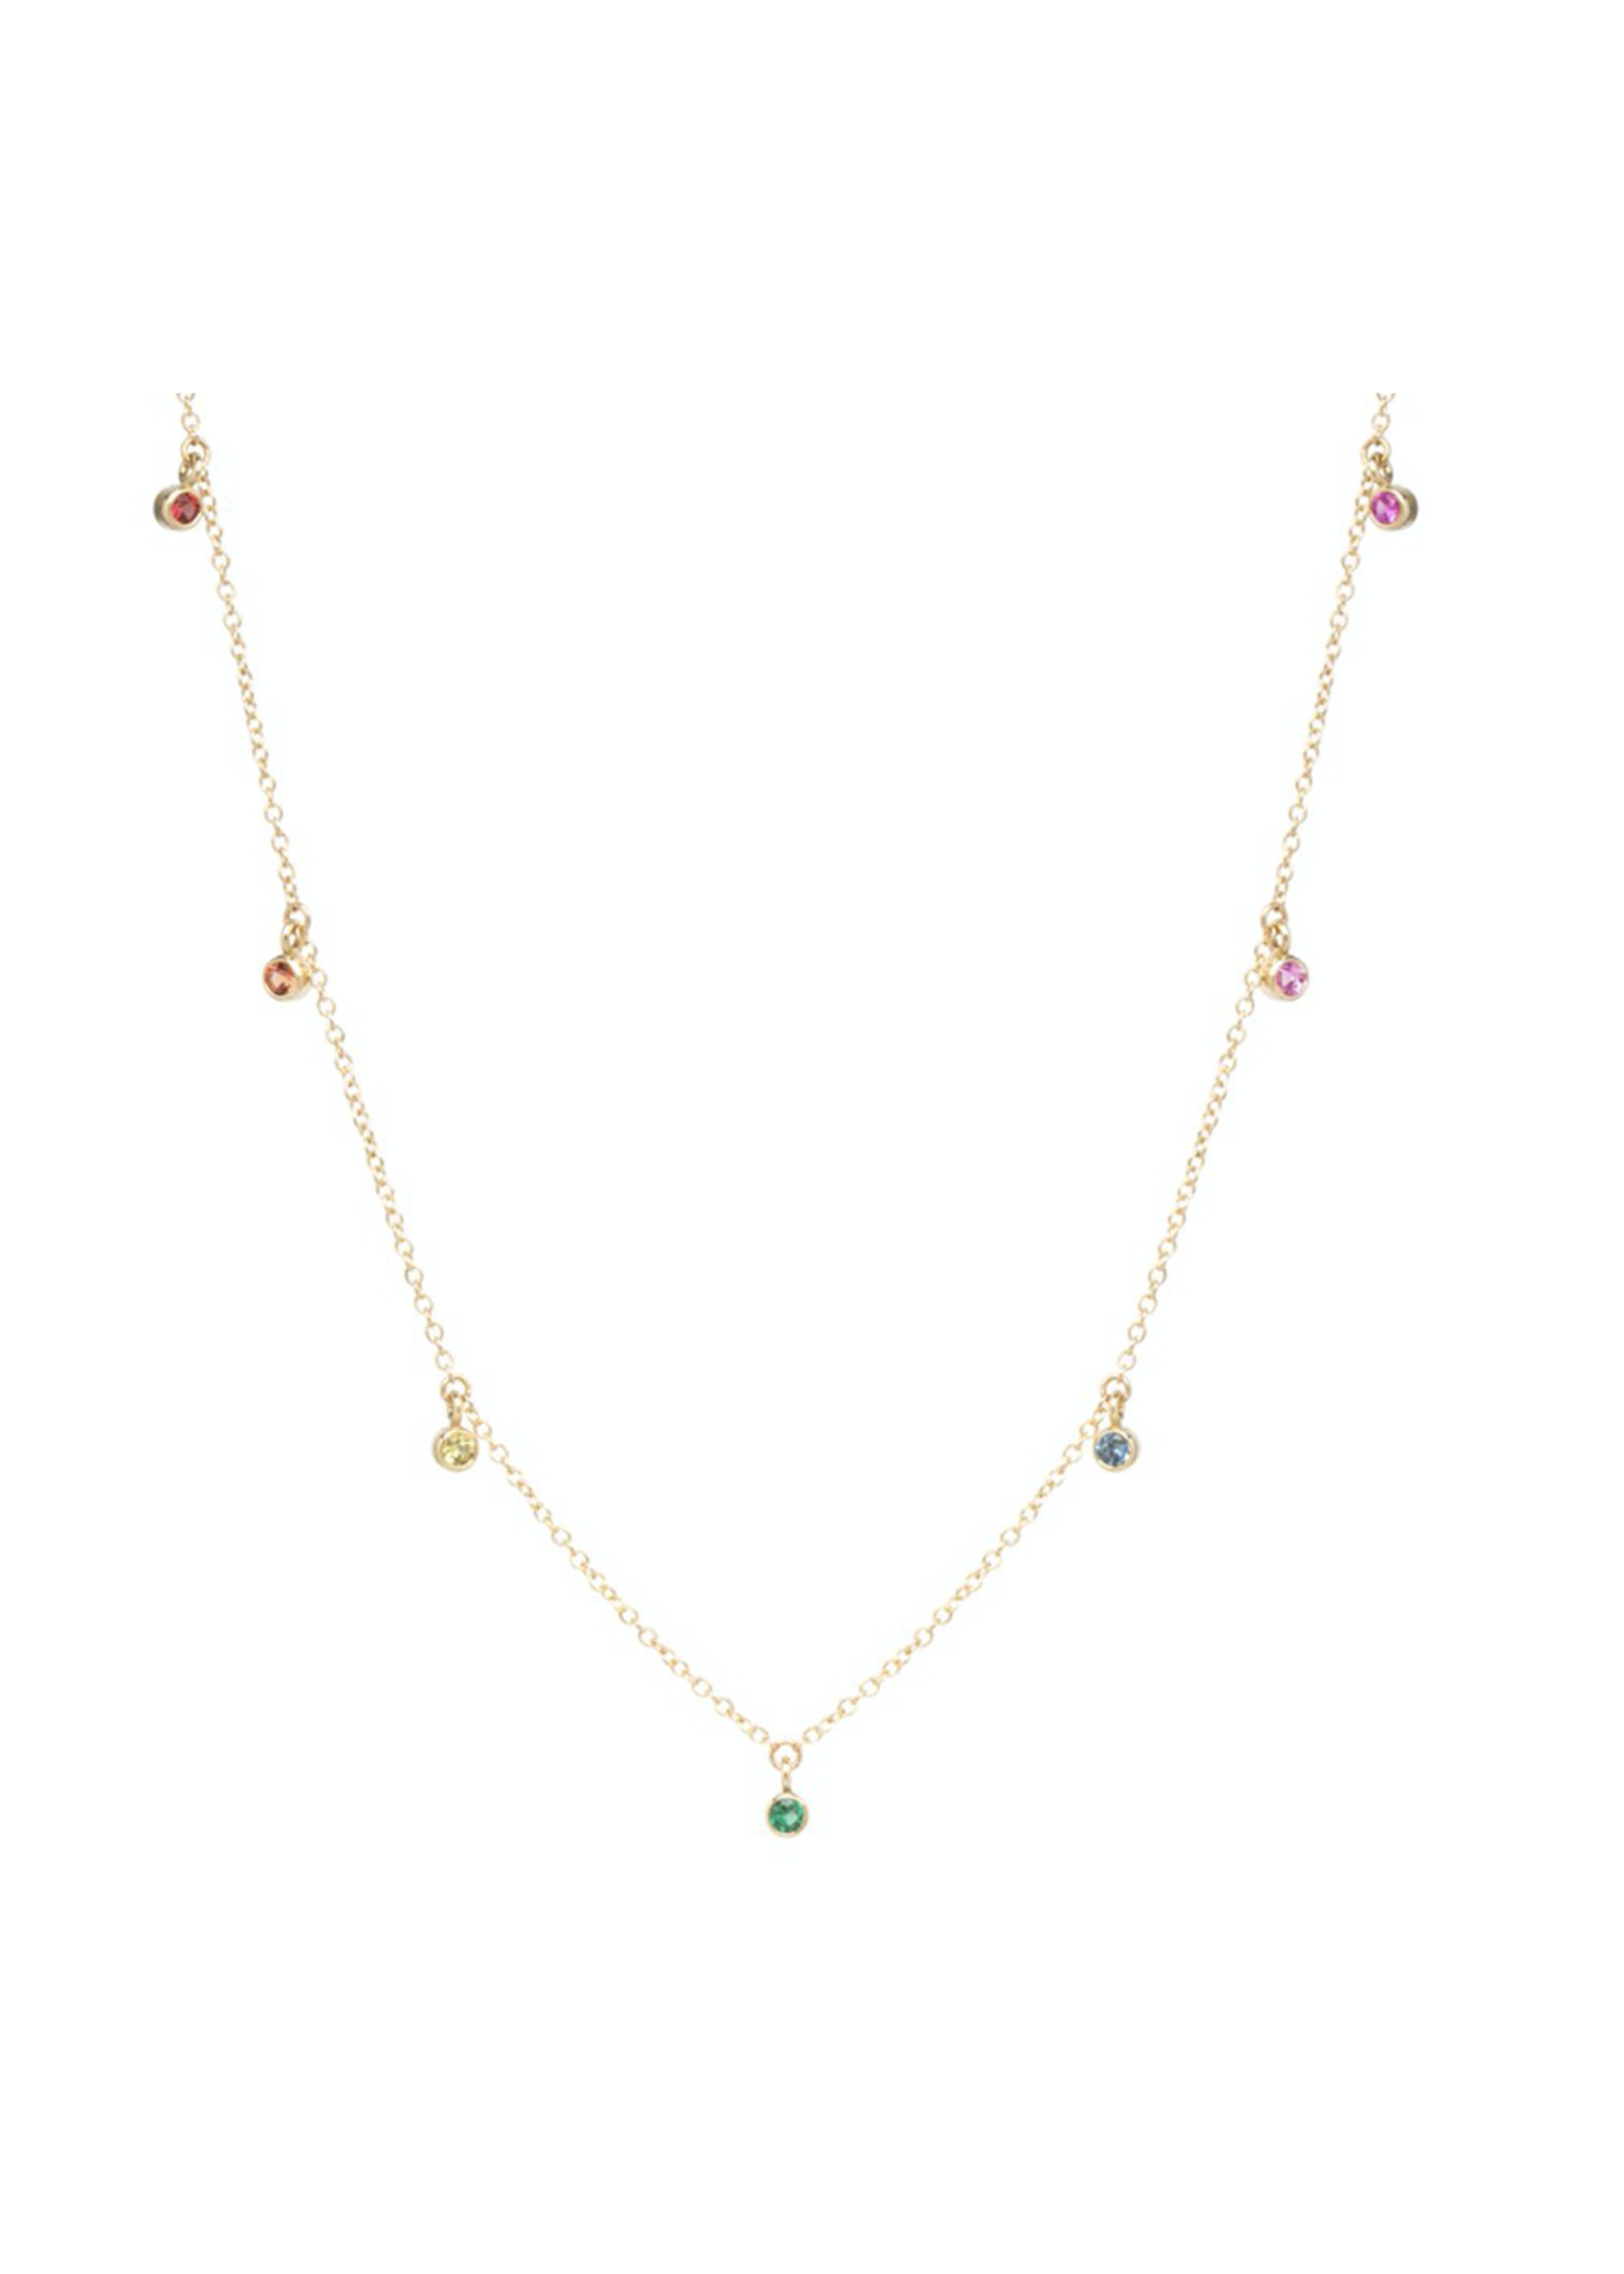 Zoe Chicco 7 Dangling Rainbow Sapphire Necklace